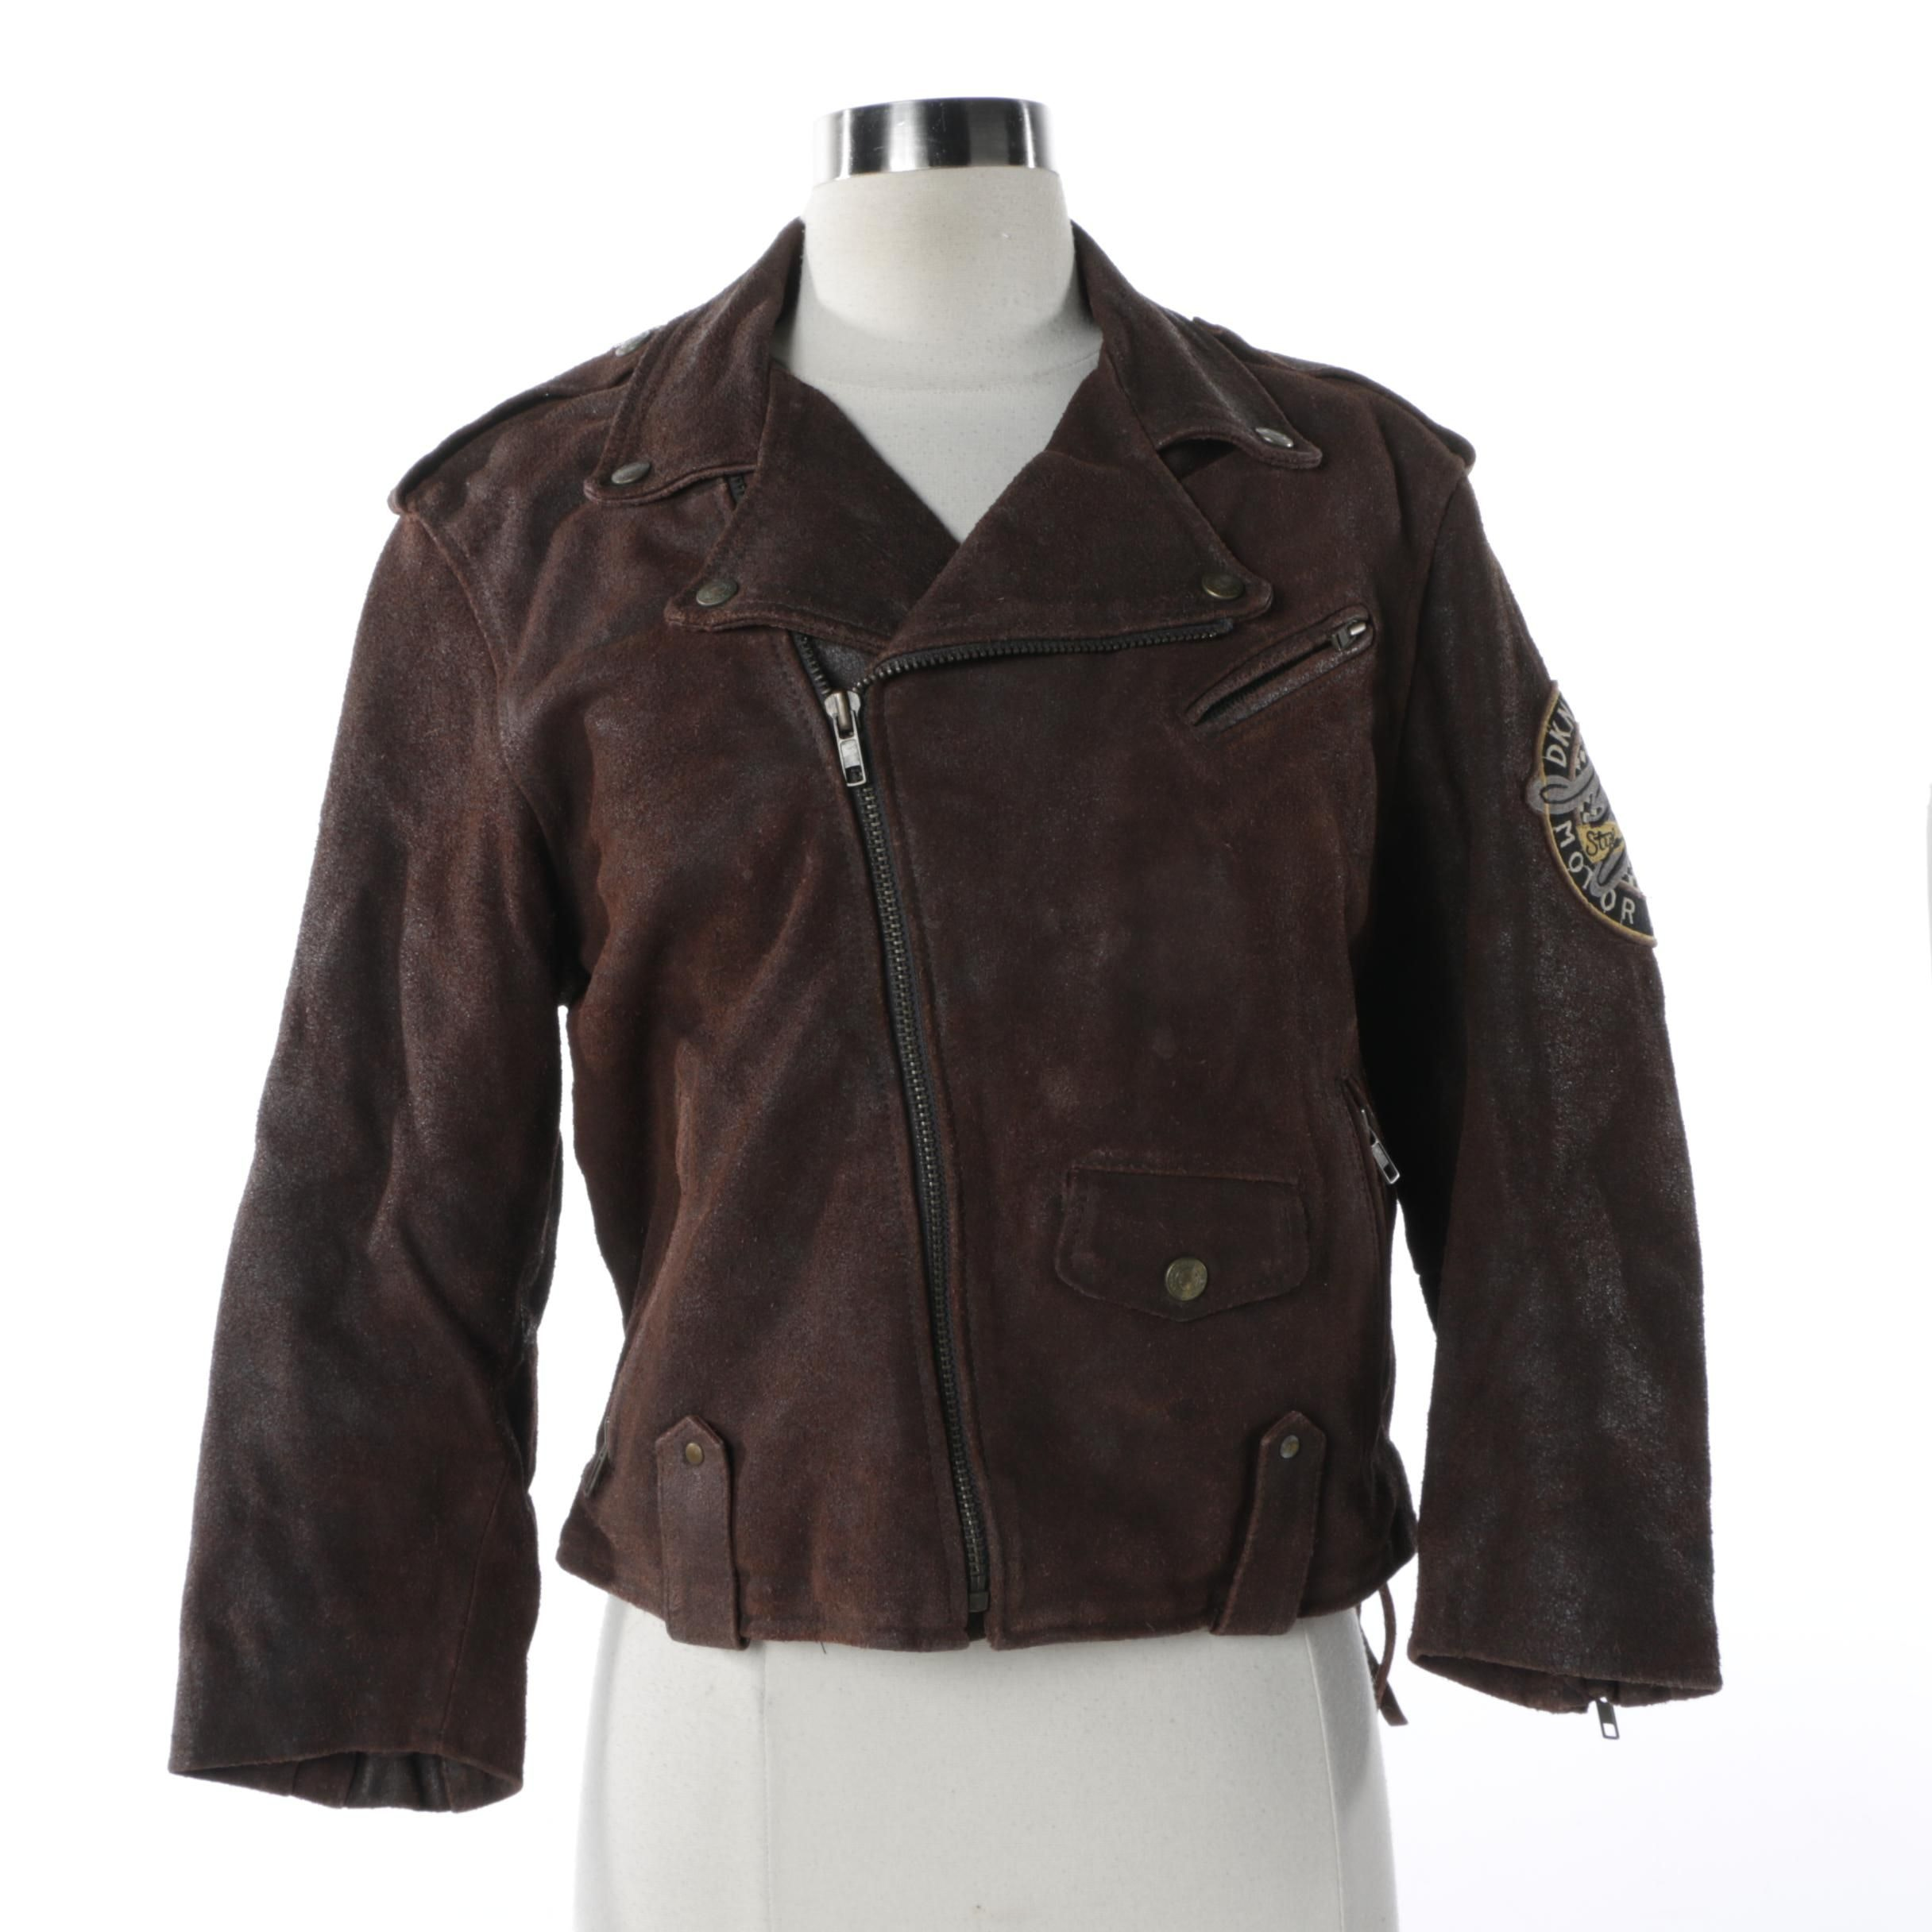 Women's DKNY Brown Leather Motorcycle Style Jacket